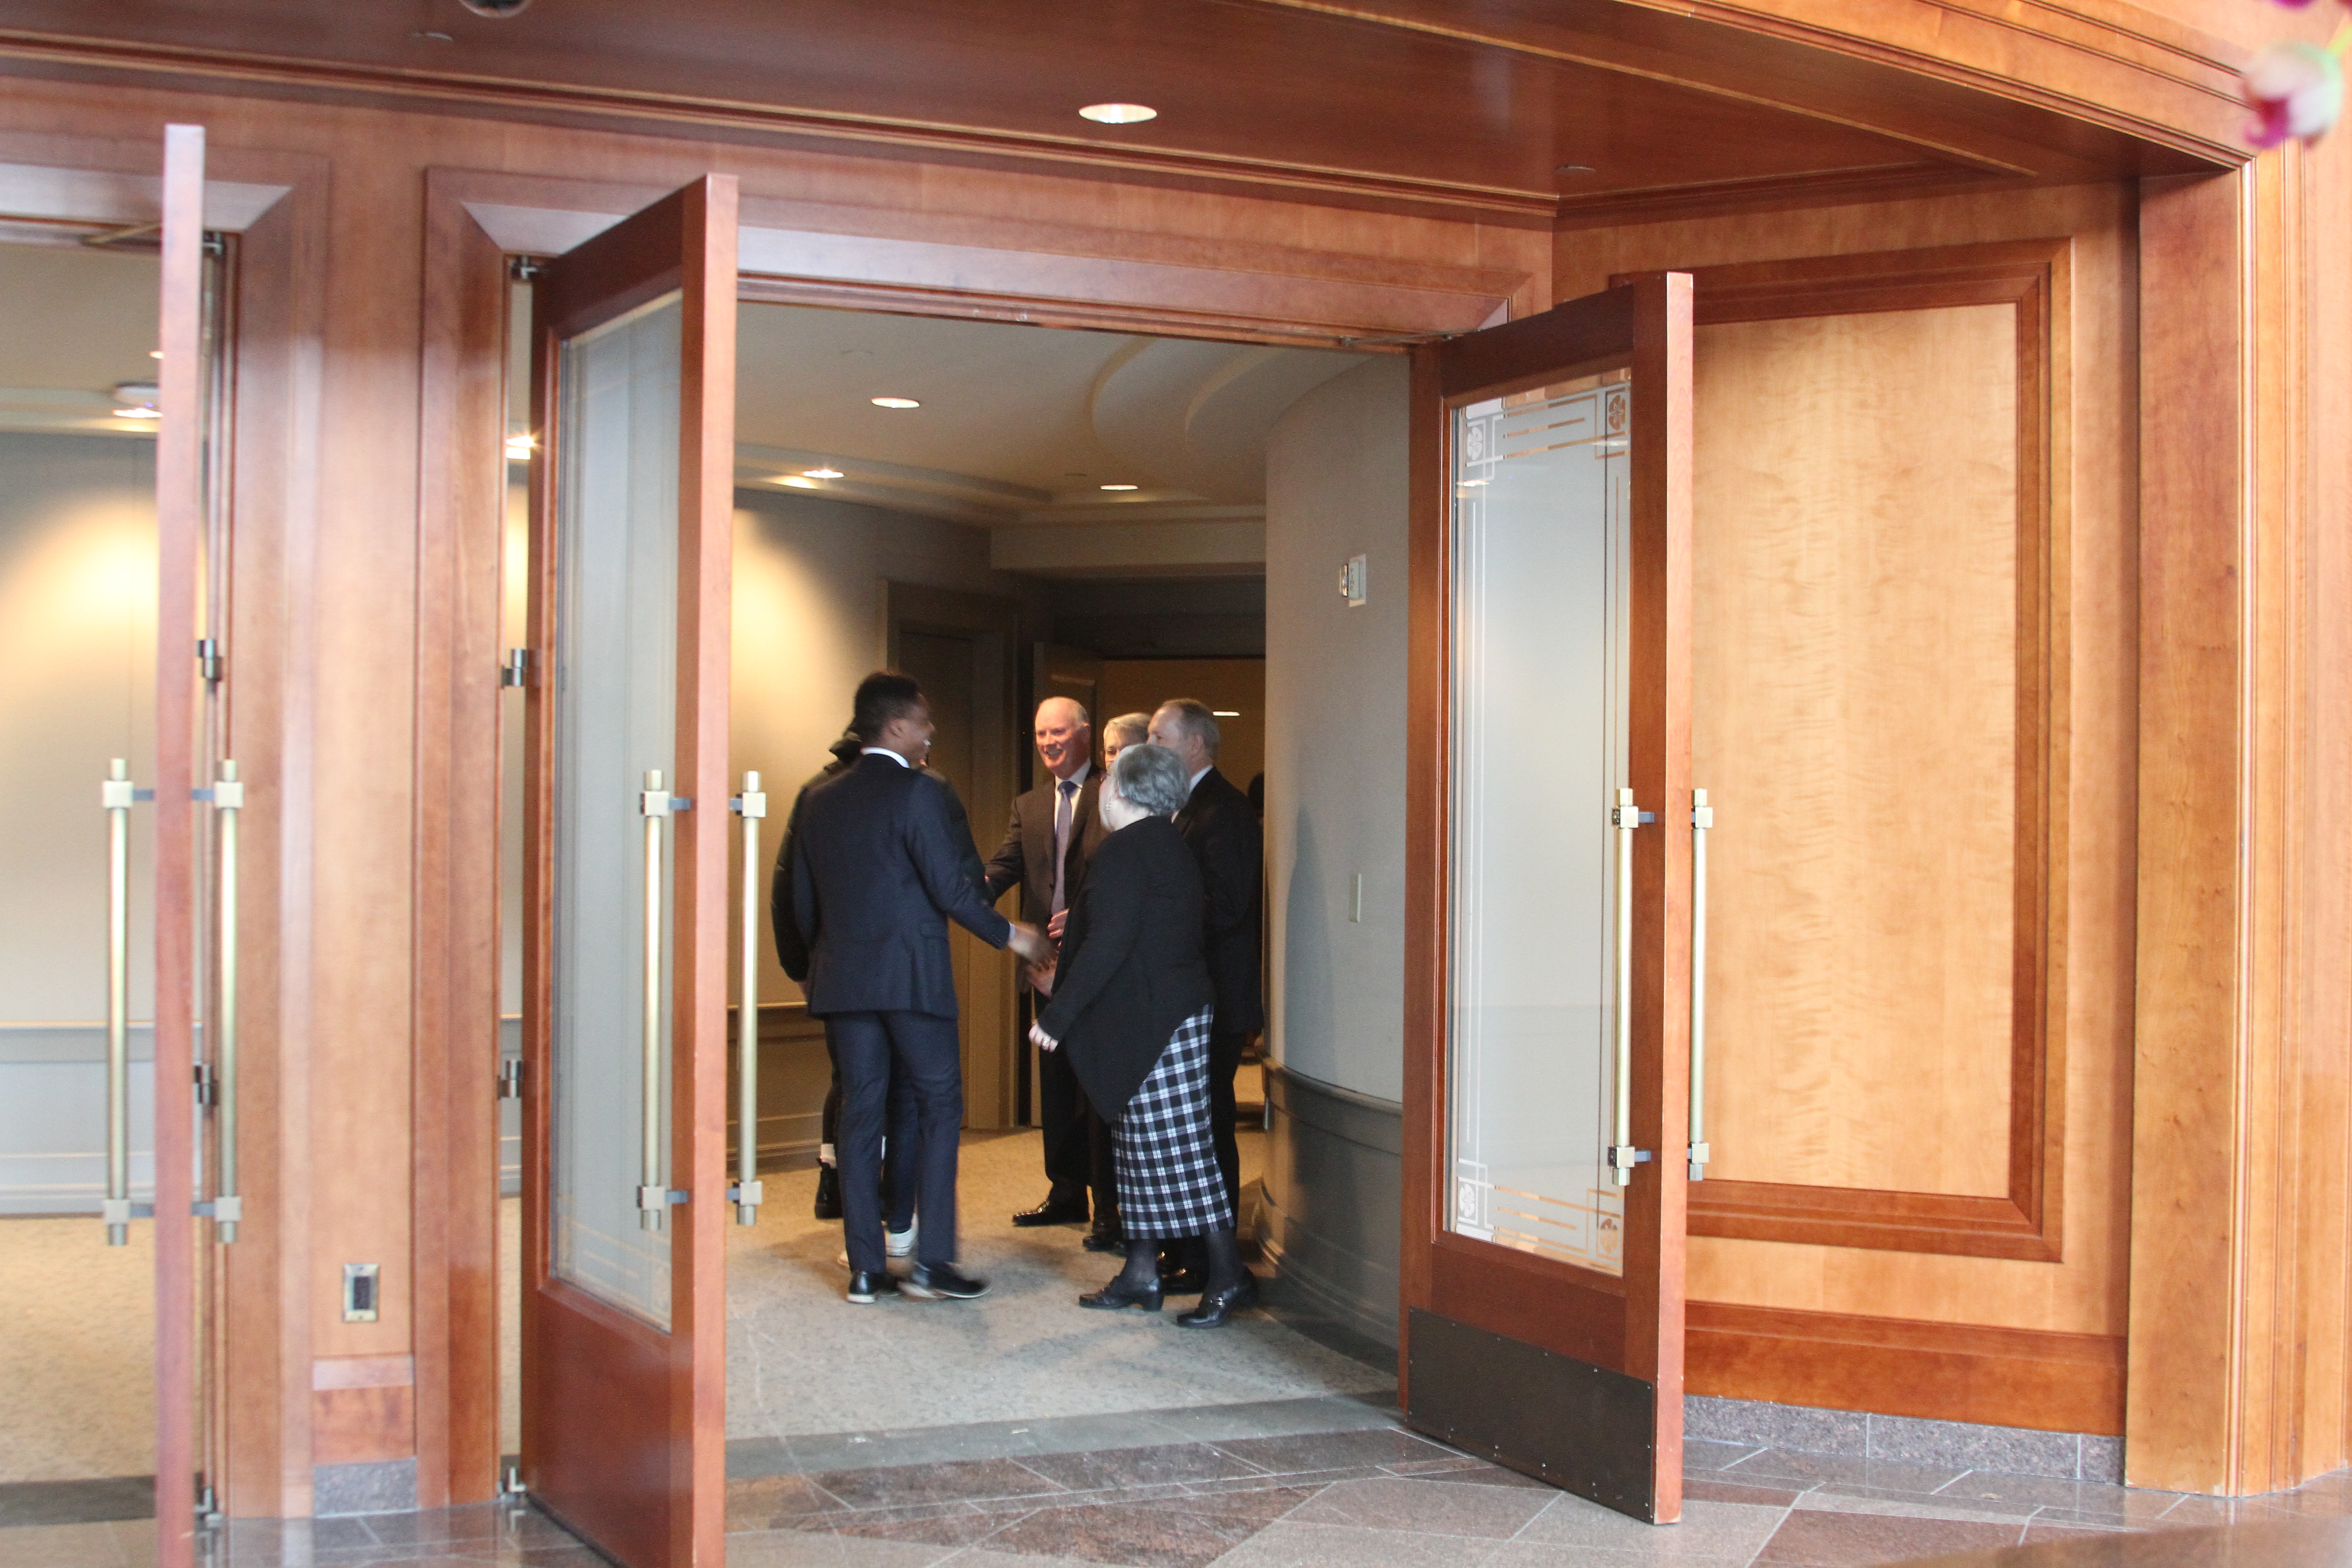 Elder Kim B. Clark, Sister Sue Clark, LDS Business College President Bruce C. Kusch and Sister Alynda Kusch greet LDS Business College students as they enter the Conference Center Theater for a devotional on Feb. 19, 2019.